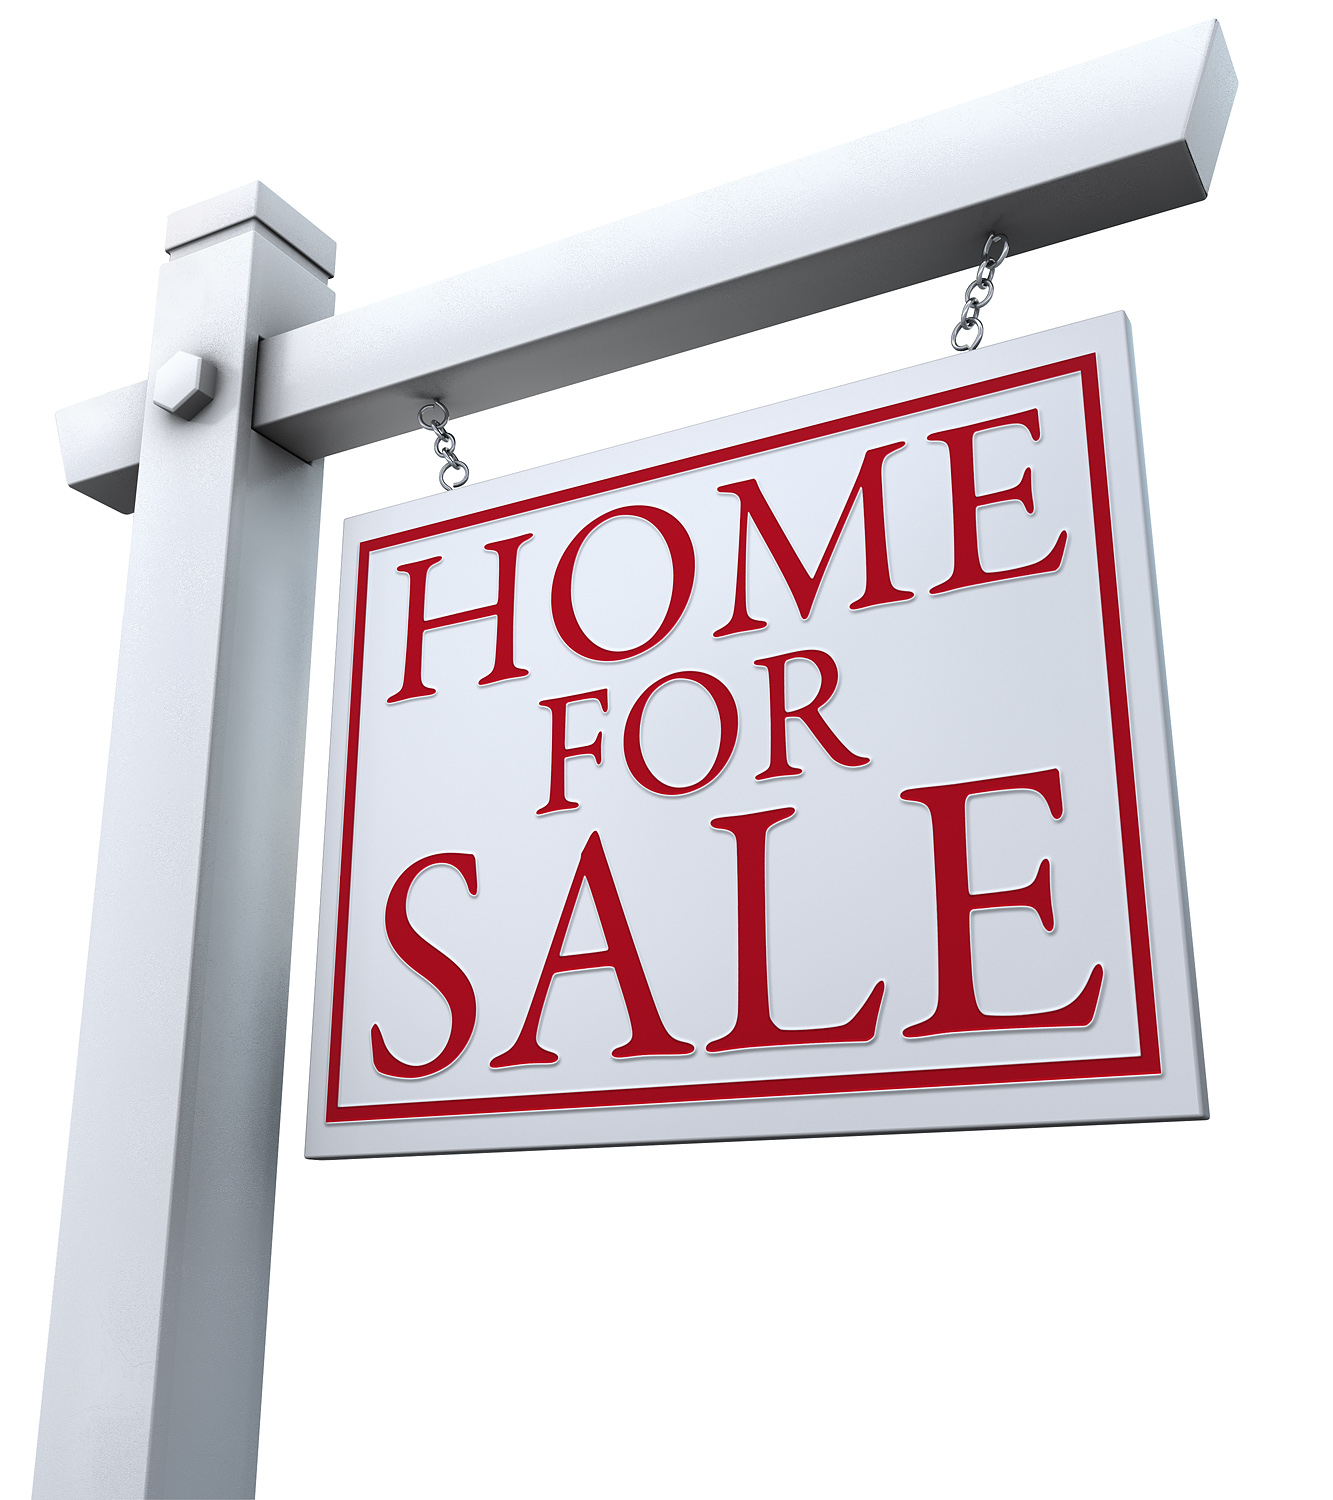 House For Sale Sign Clip Art.